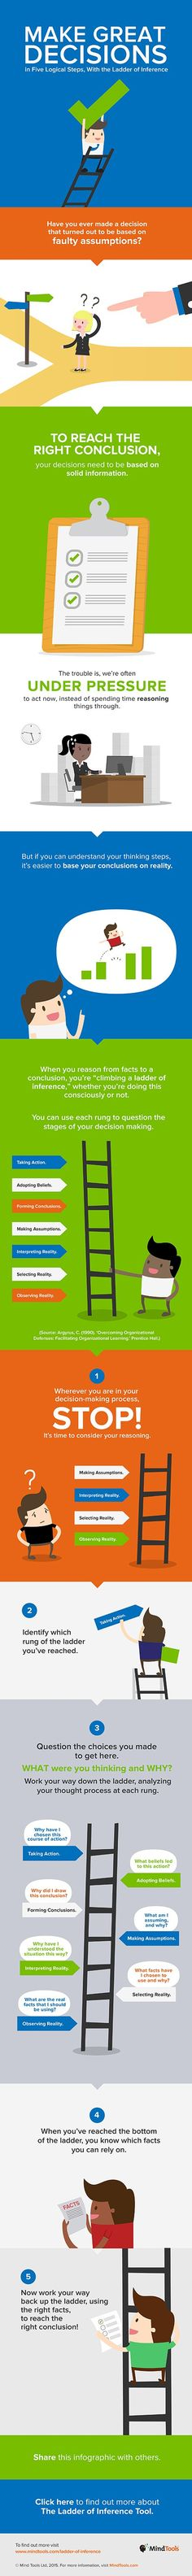 Ladder of Inference Infographic